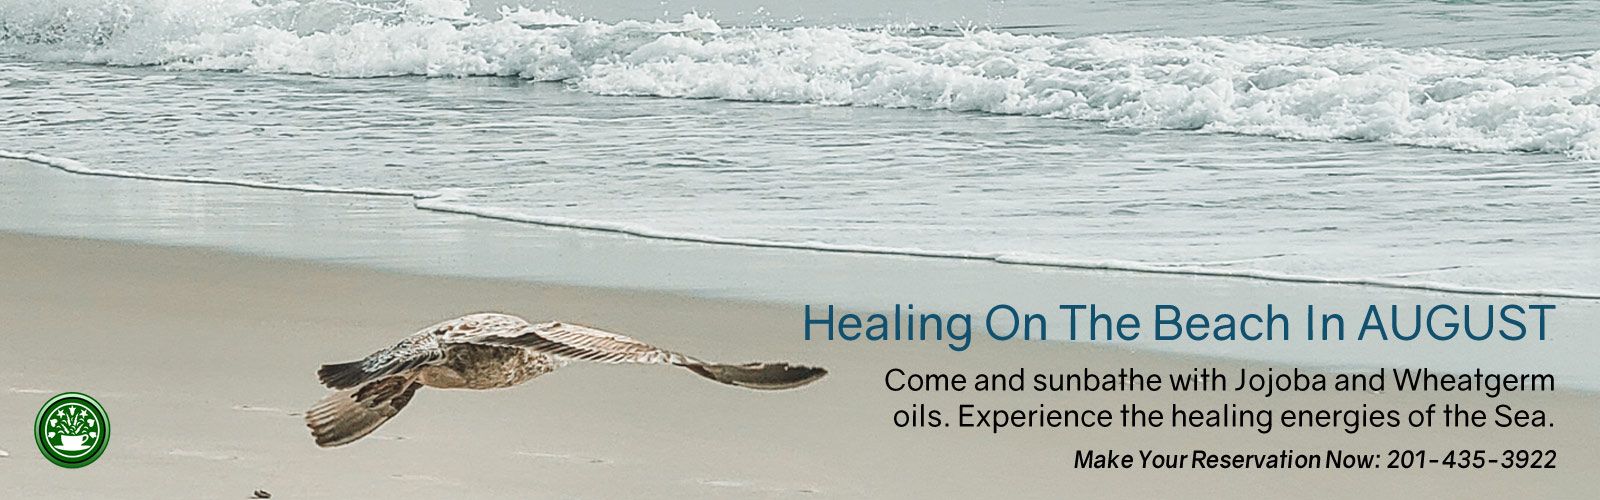 Healing On the Beach in August